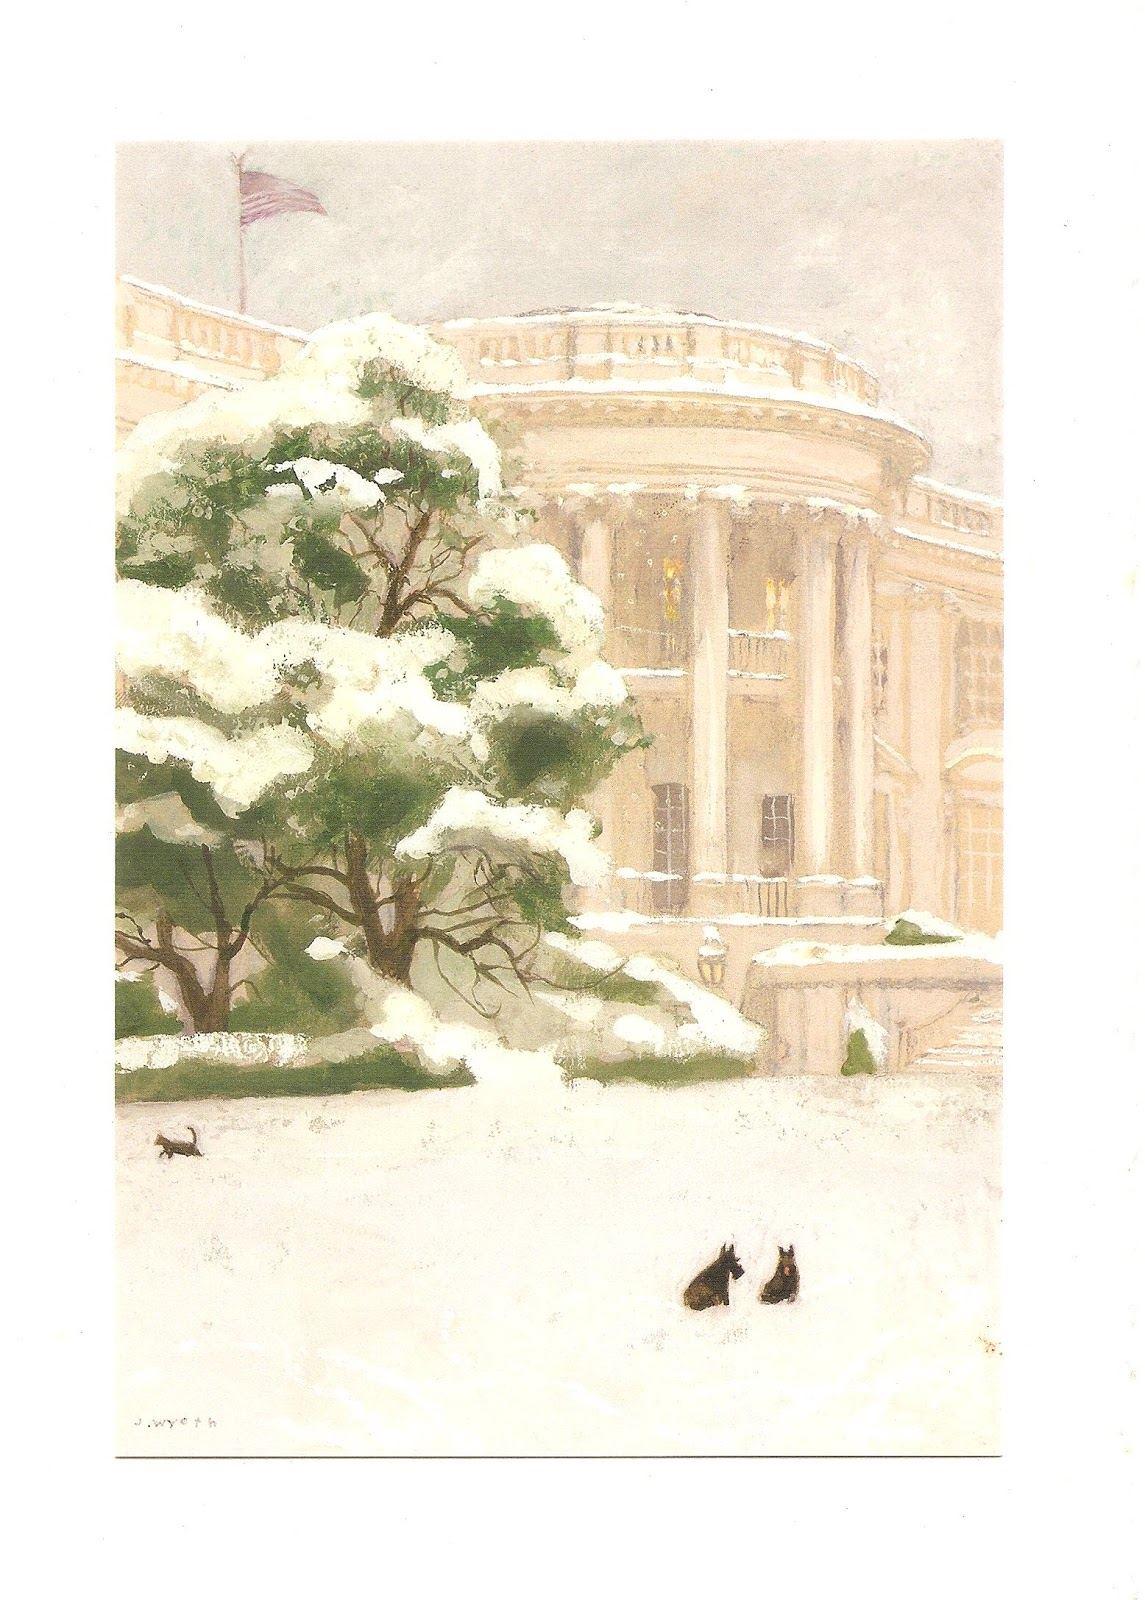 Mostly Paper Dolls Too!: White House Christmas Card 2005